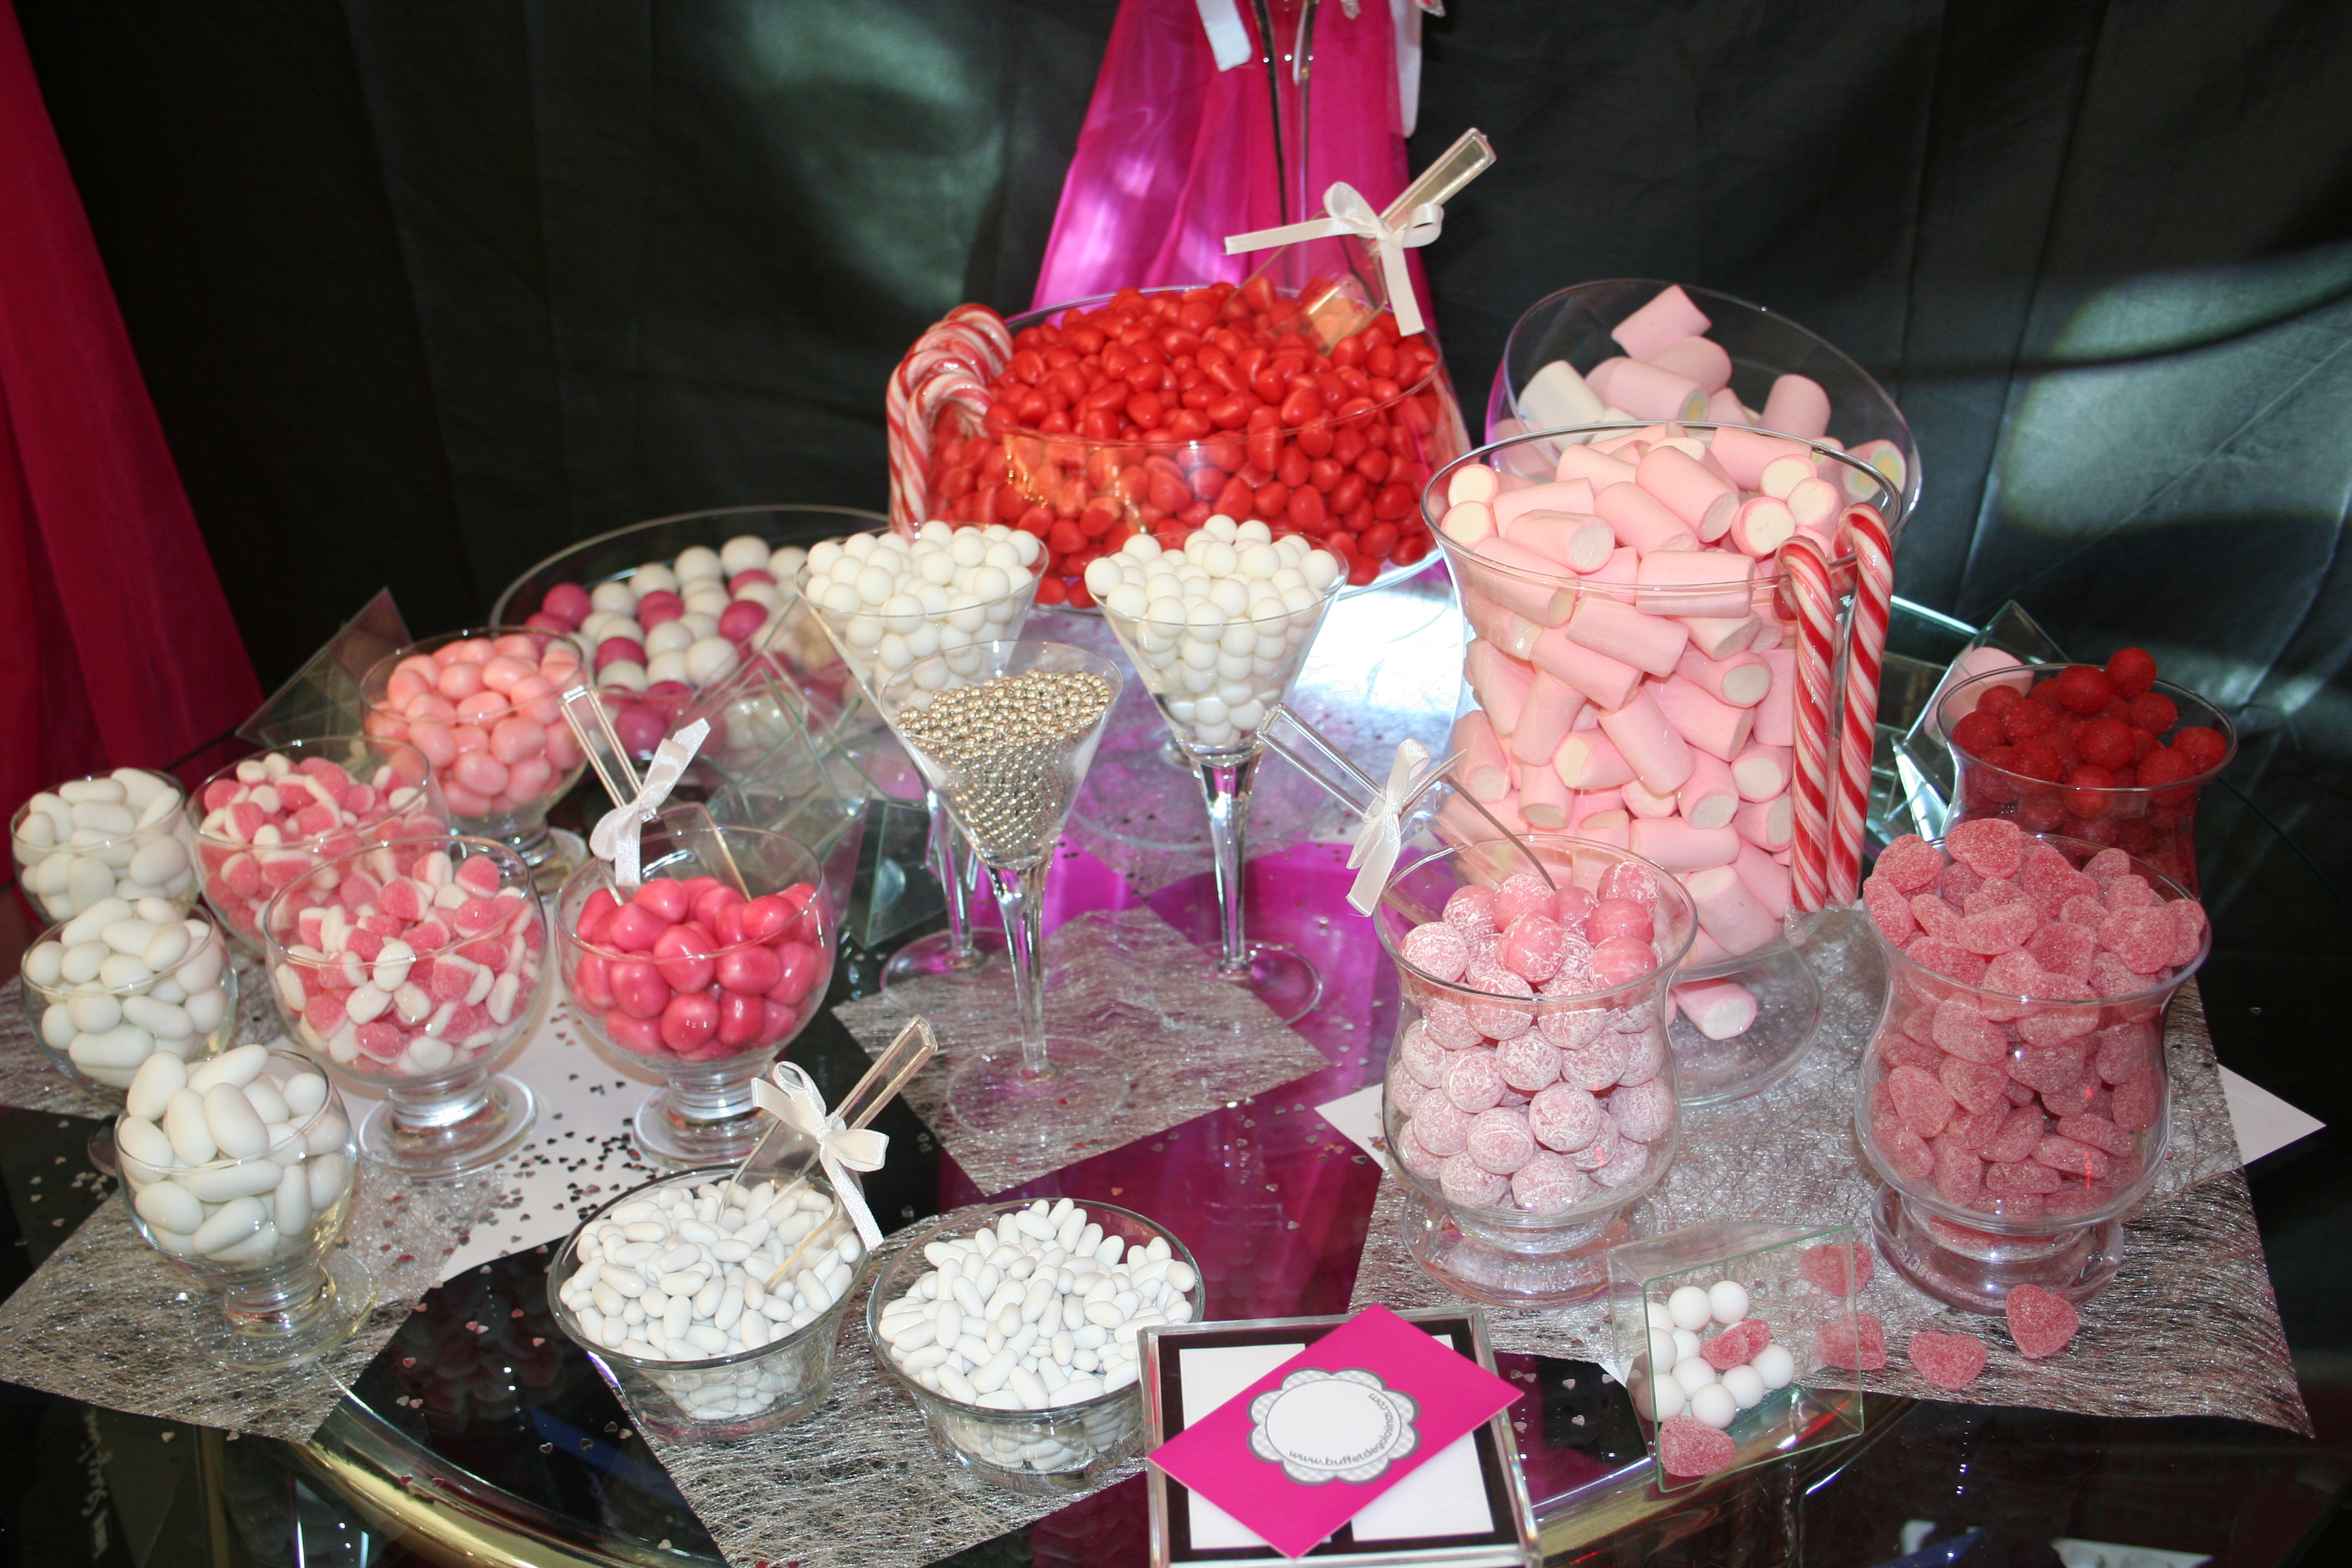 Candy bar buffet de golosinas - Decoraciones para bar ...